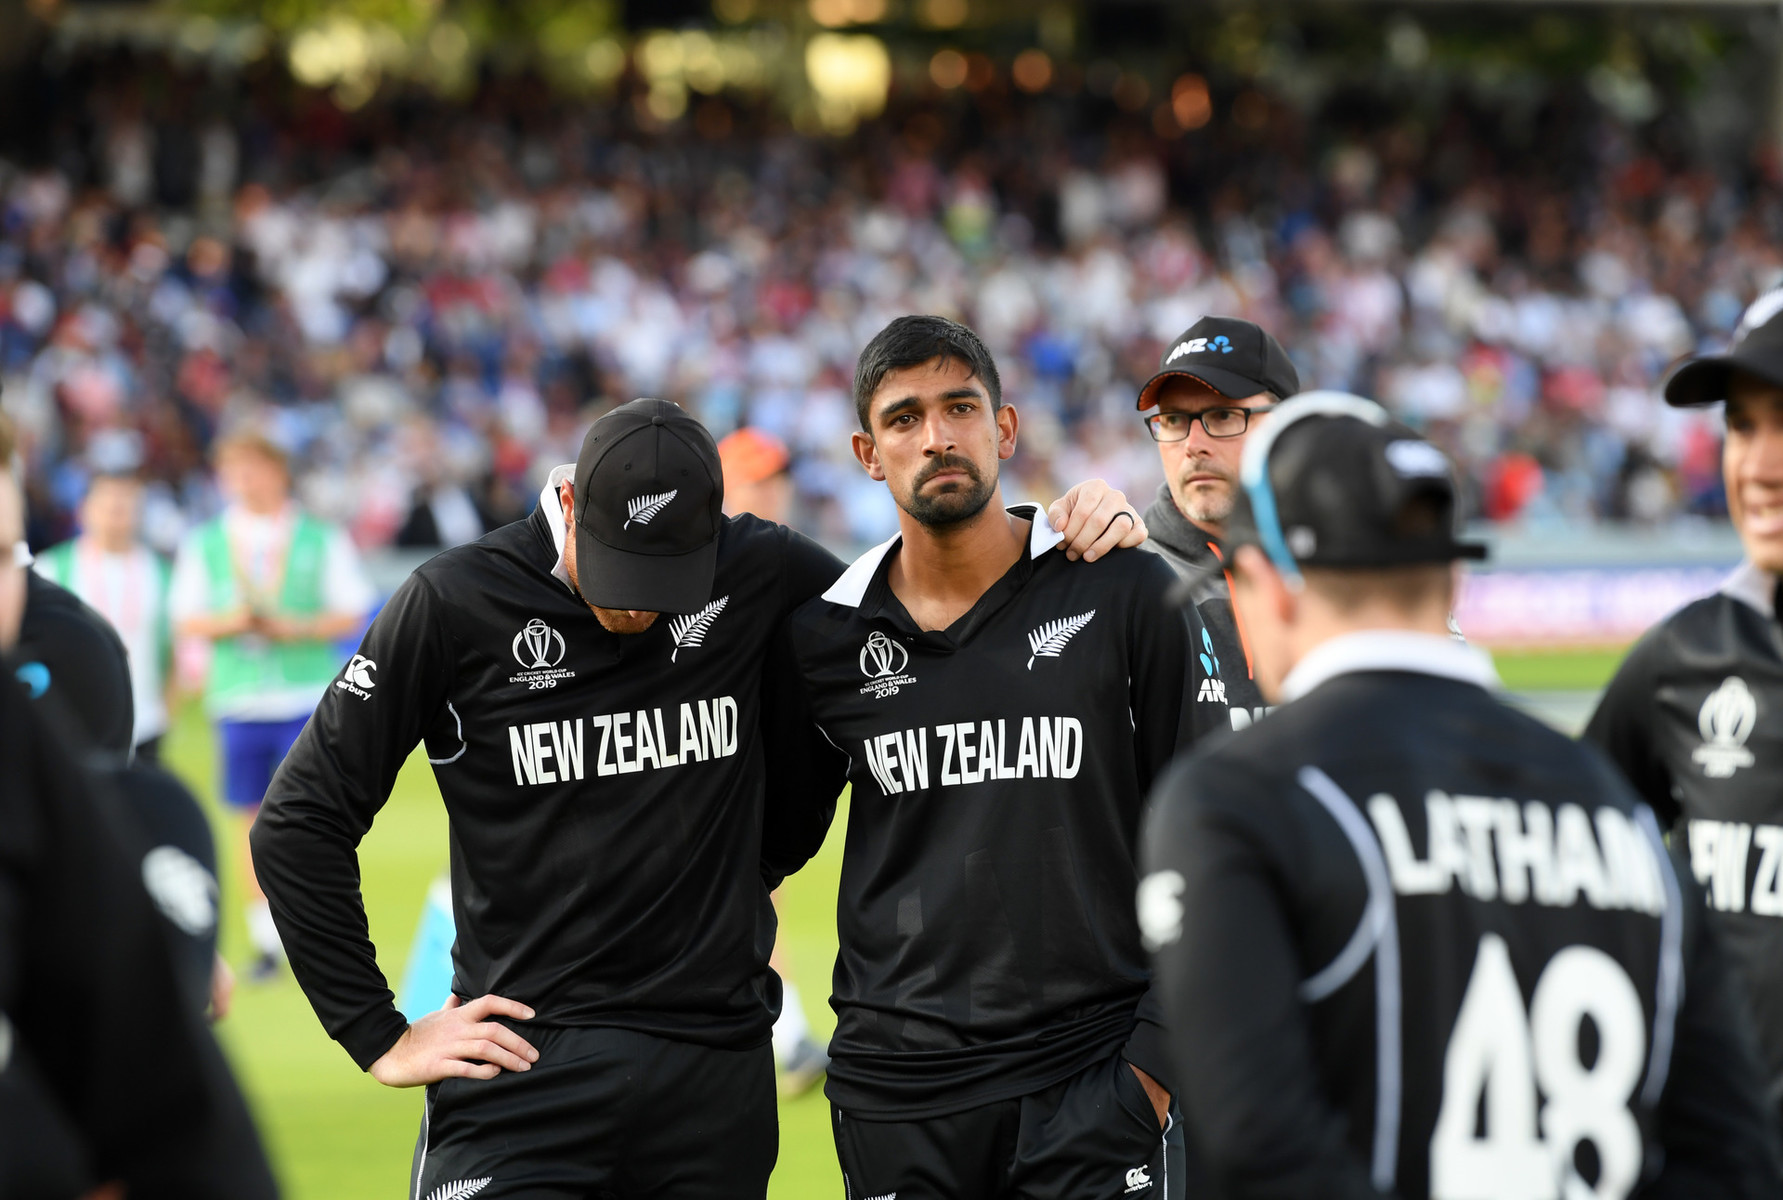 New Zealand after loosing the world cup final.